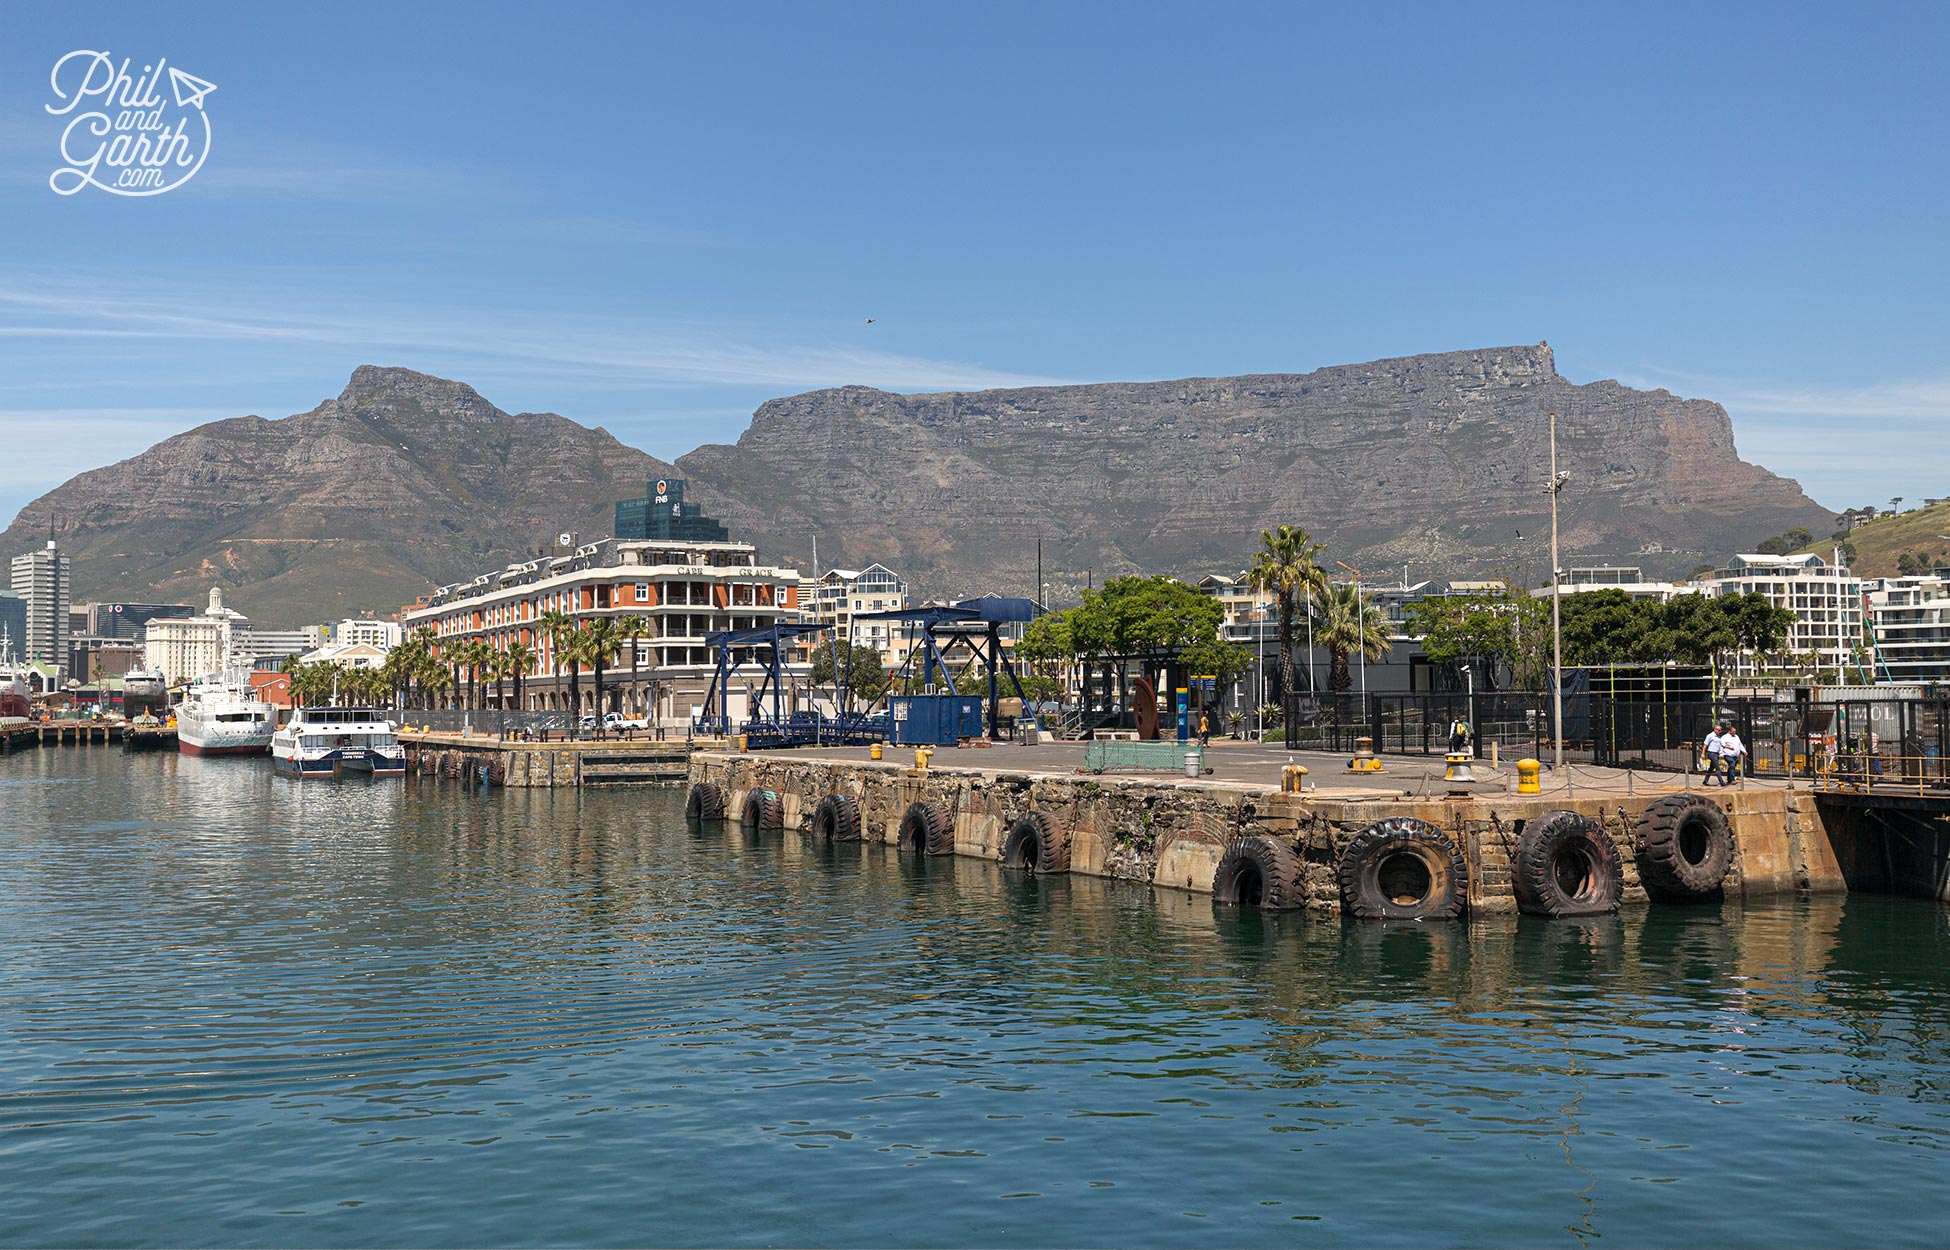 Cape Town's Table Mountain dominates the skyline